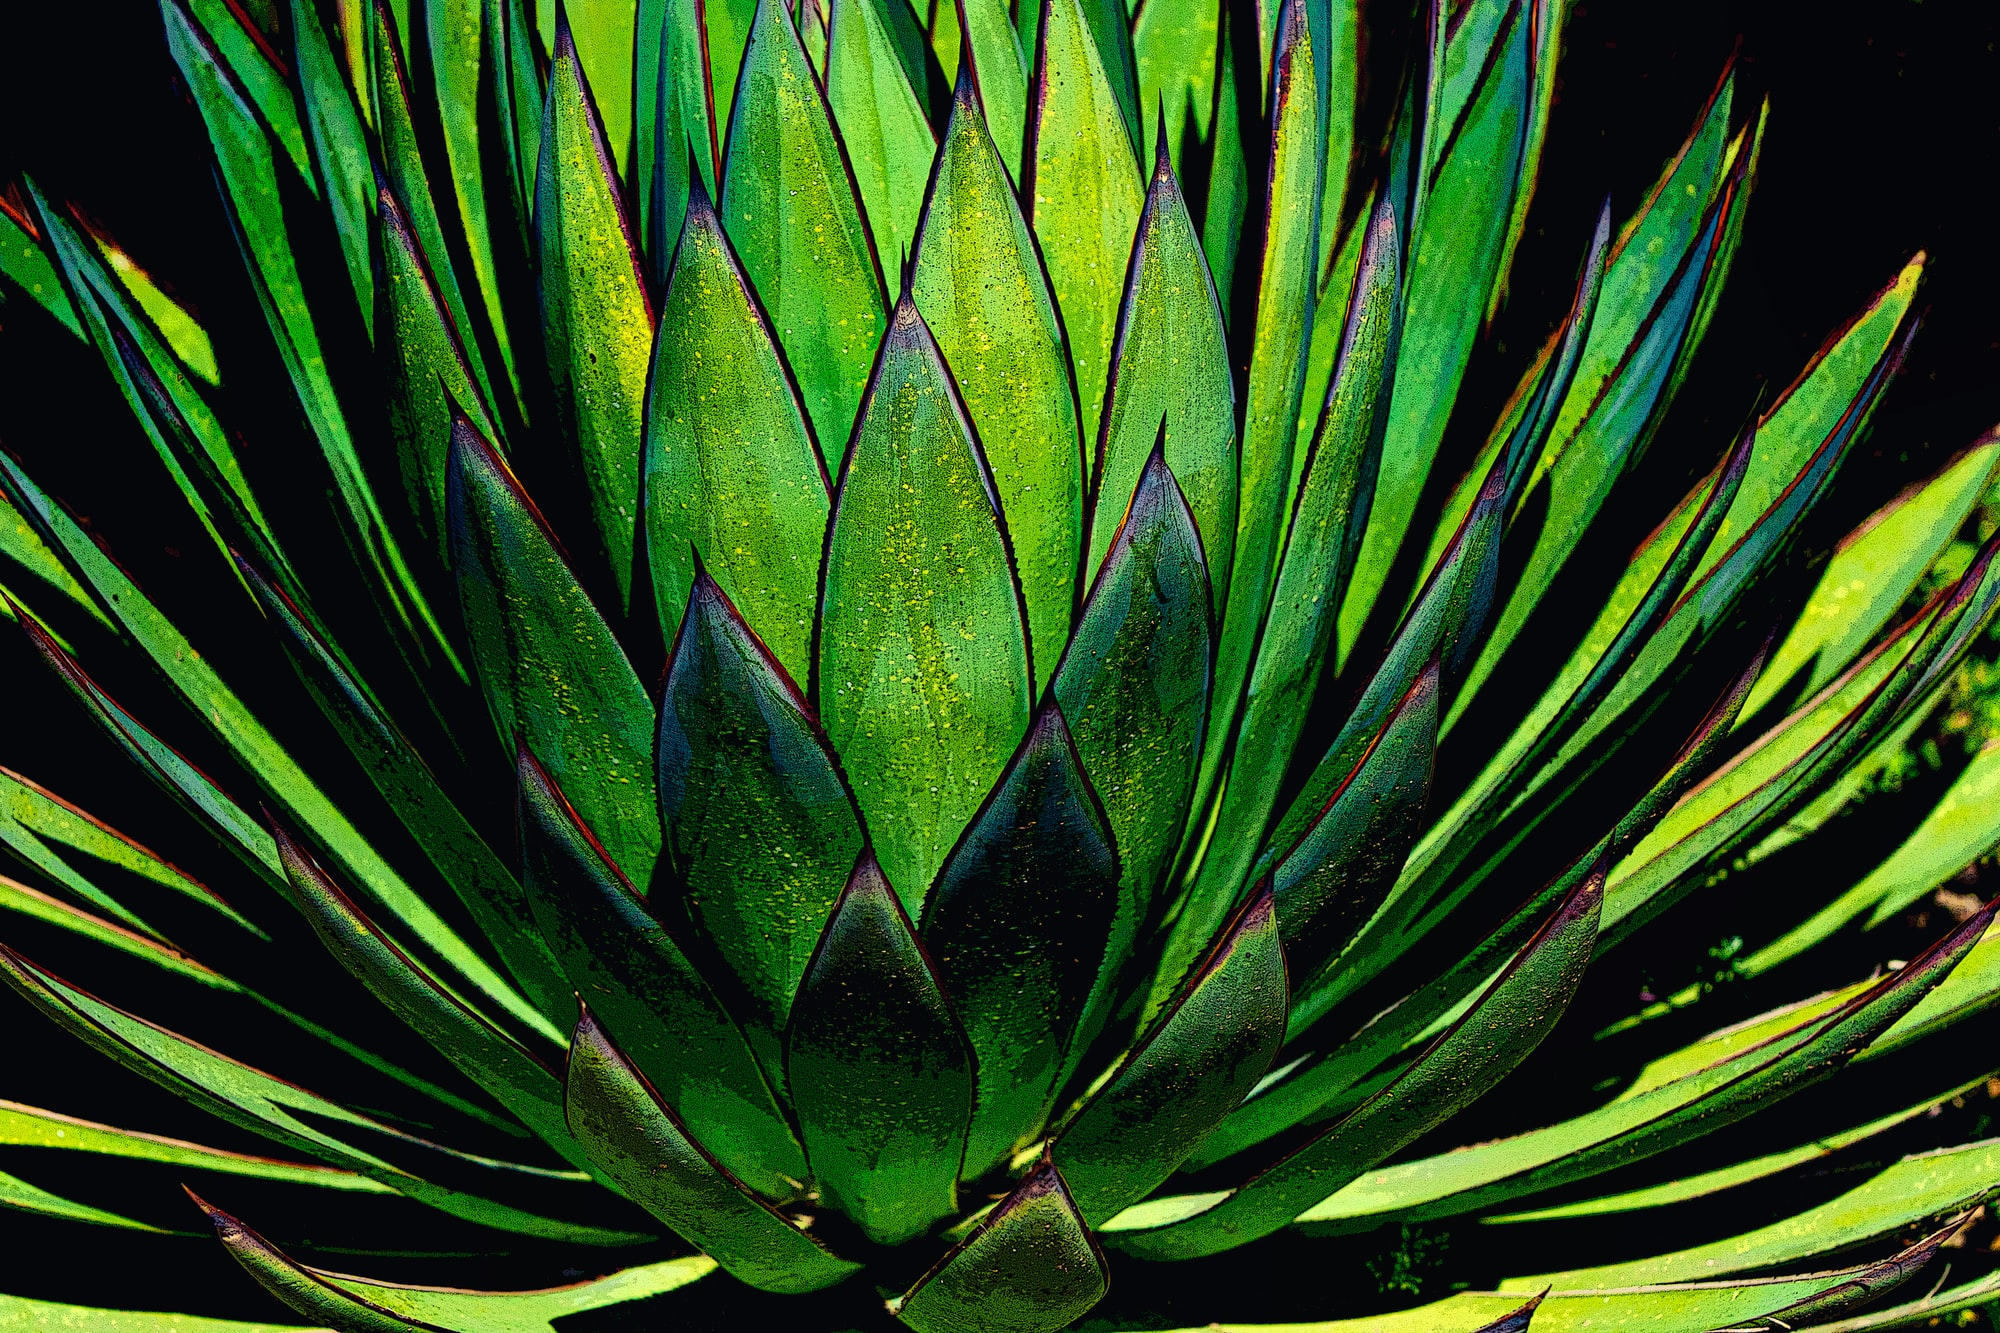 Red tipped Agave nectar